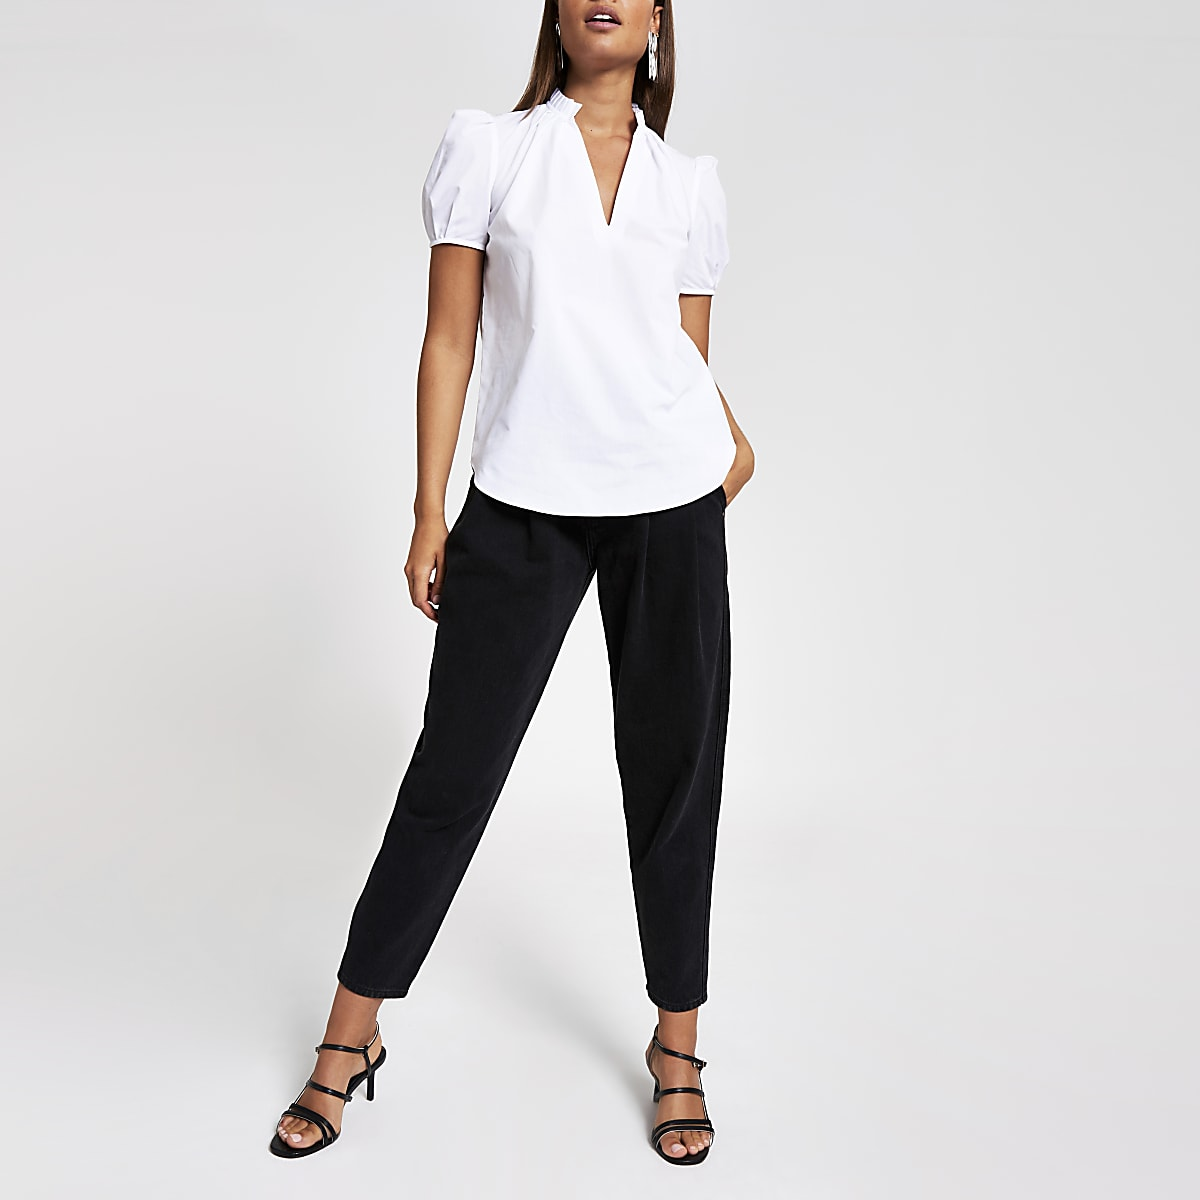 White poplin V neck shell top